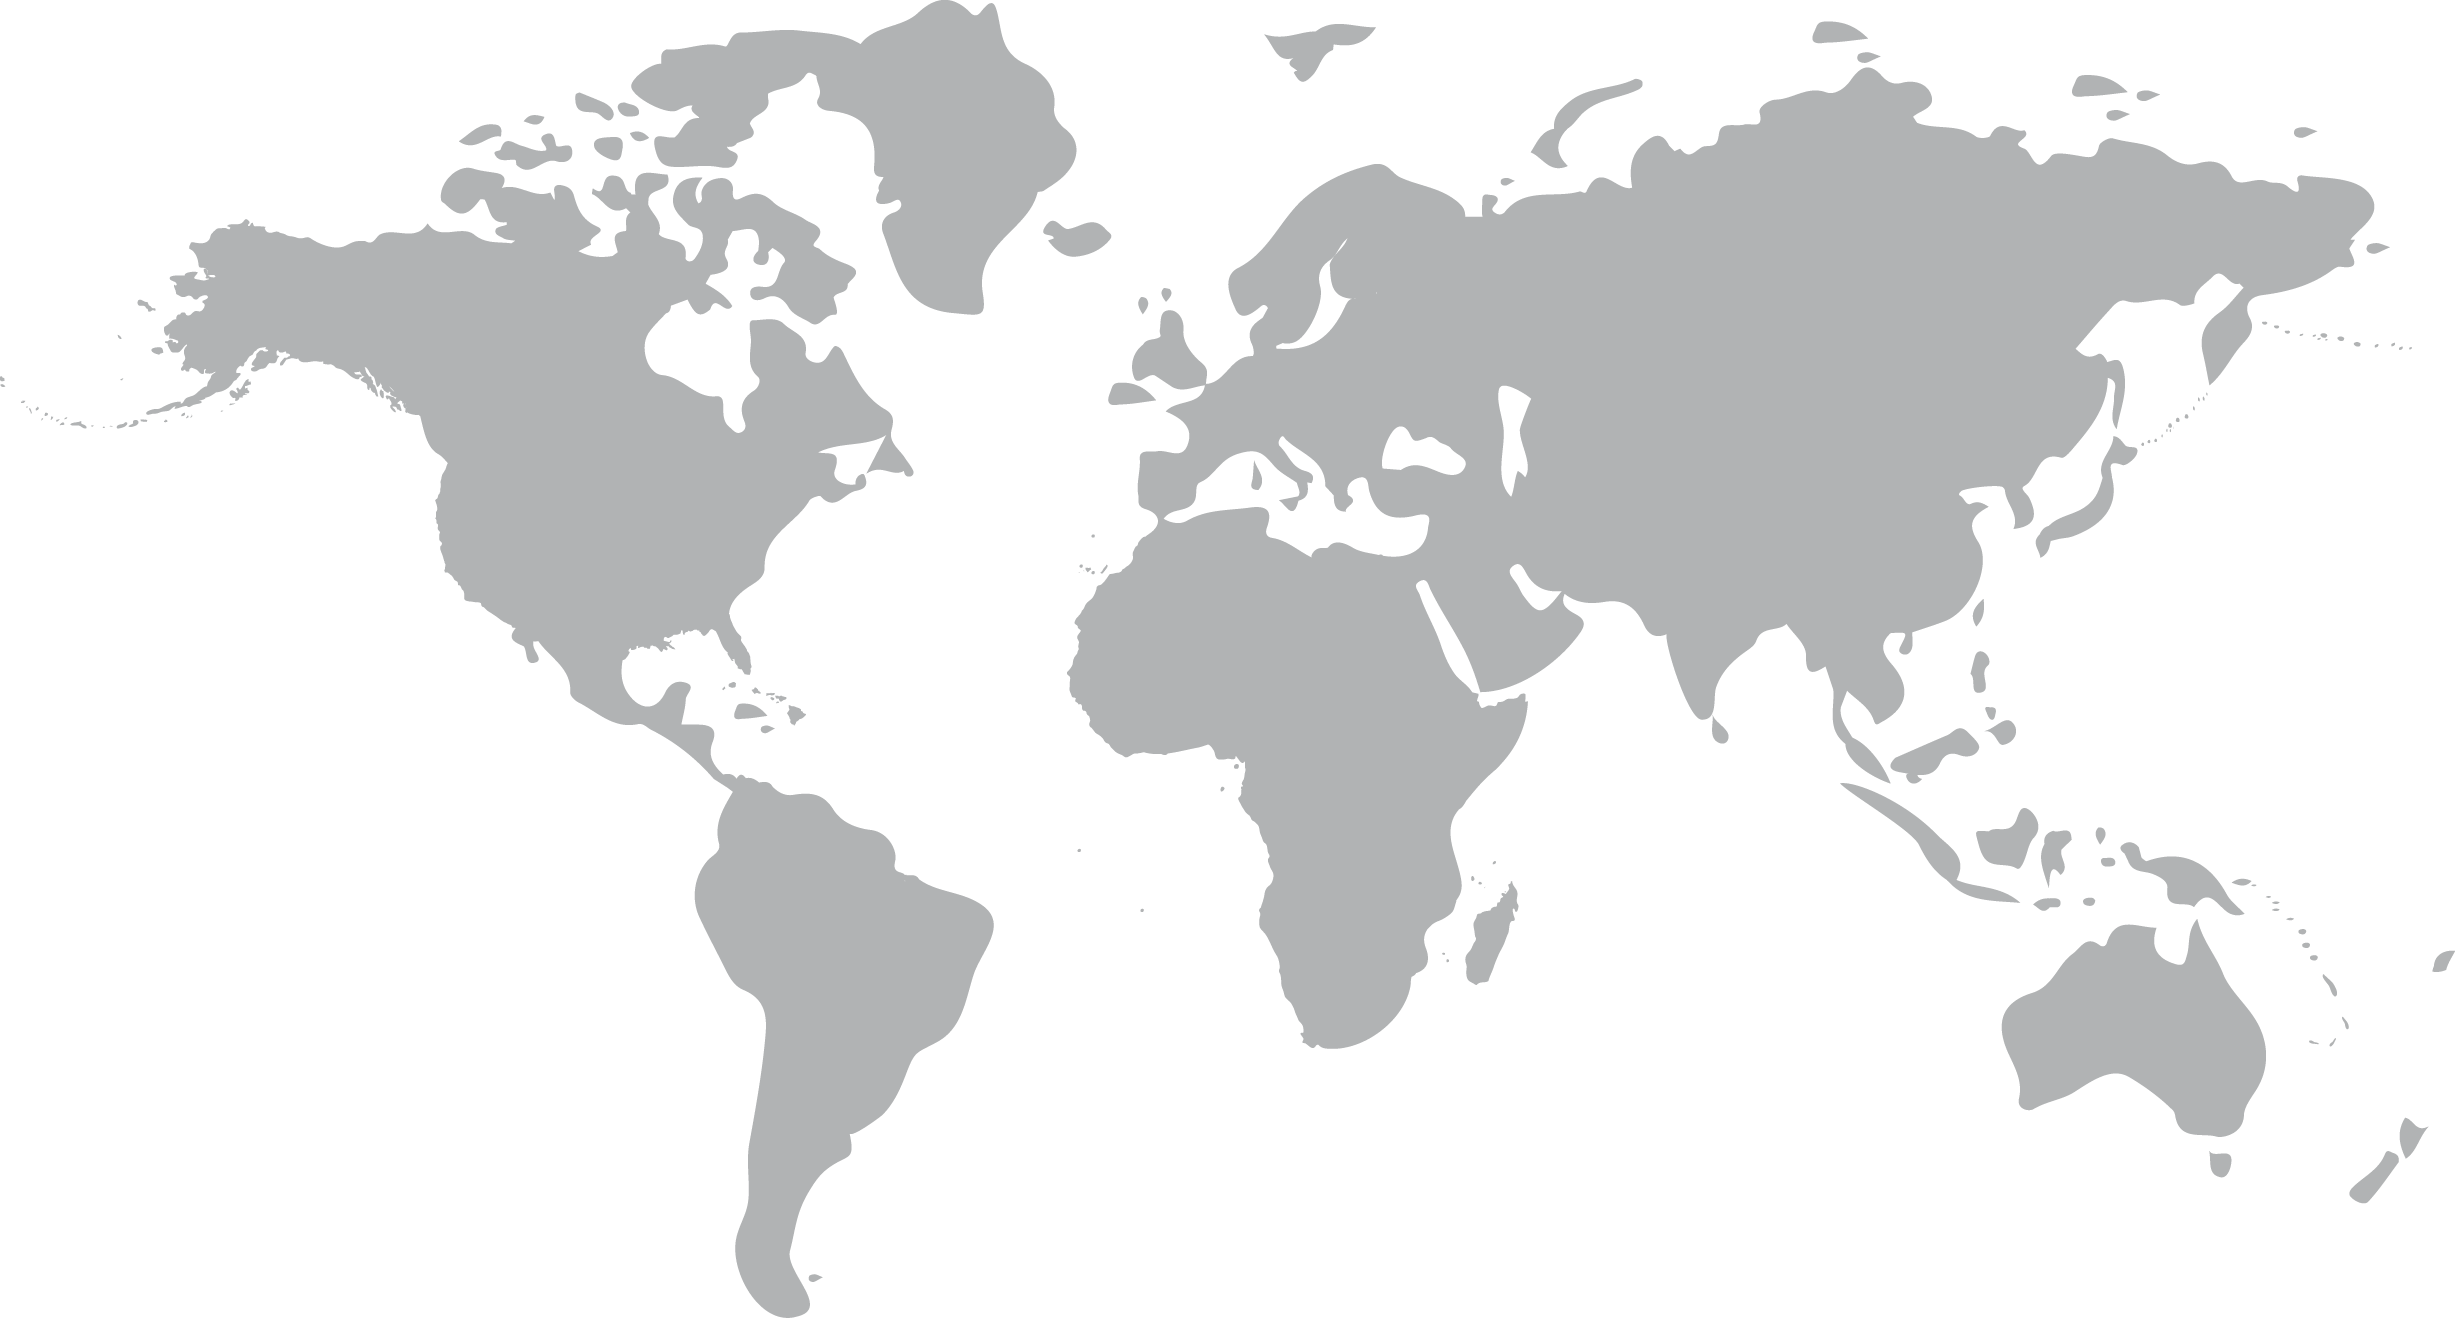 World map showing sales reps